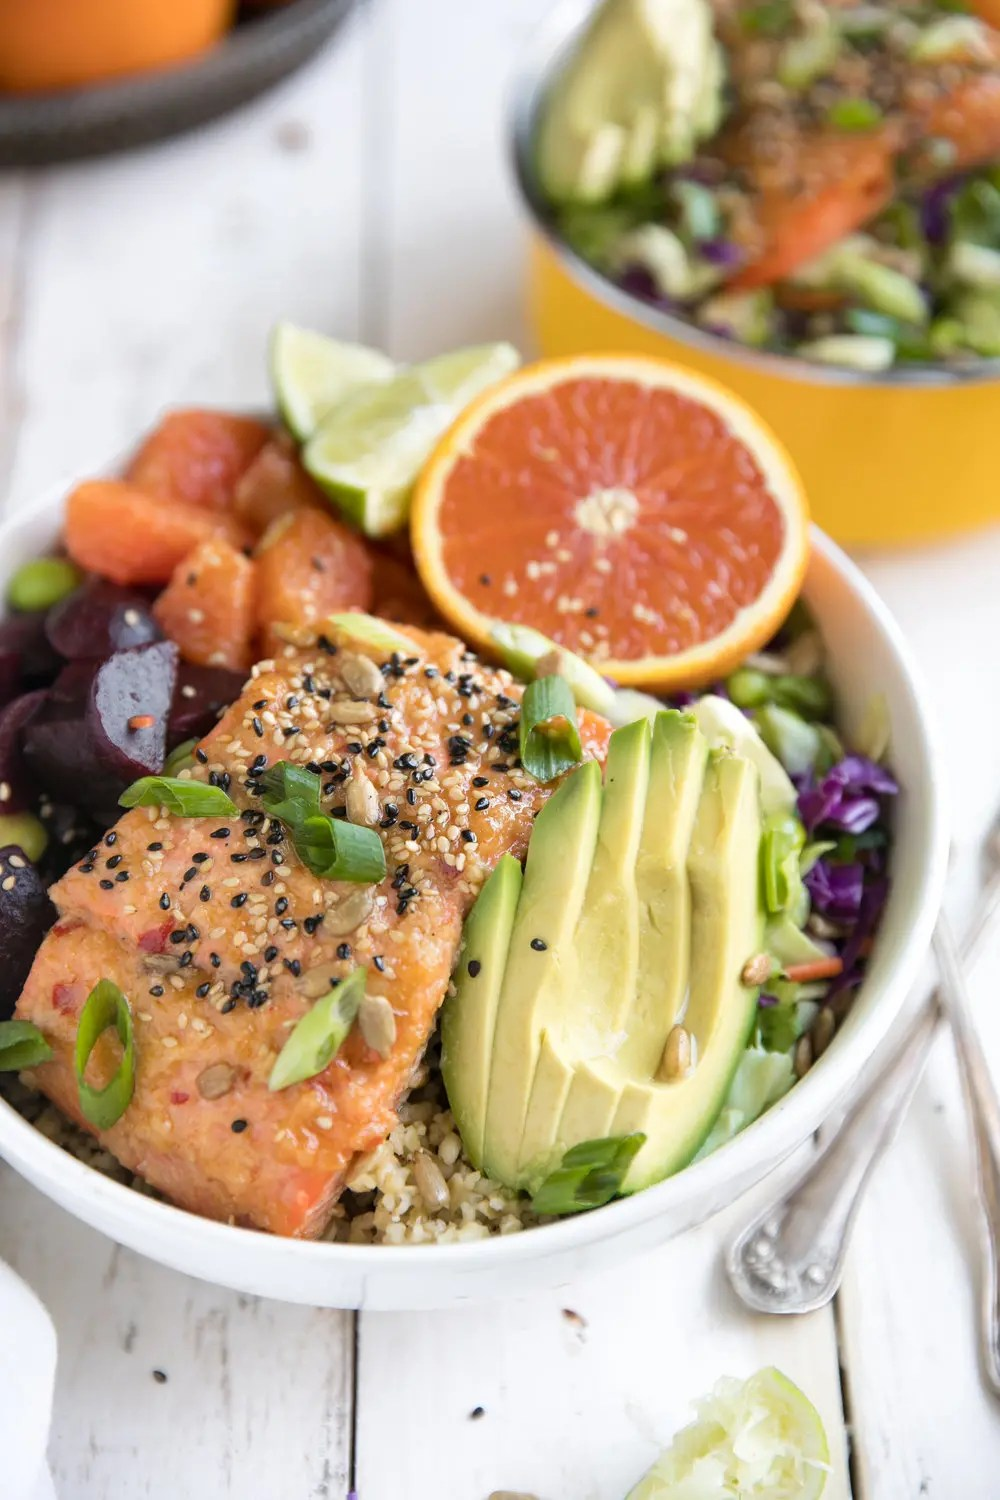 Super healthy foods like freekeh, beets, oranges, and avocado are just part of what make this nutritious 30 minute Sweet Chili Miso Salmon Salad a dinner win any night of the week!